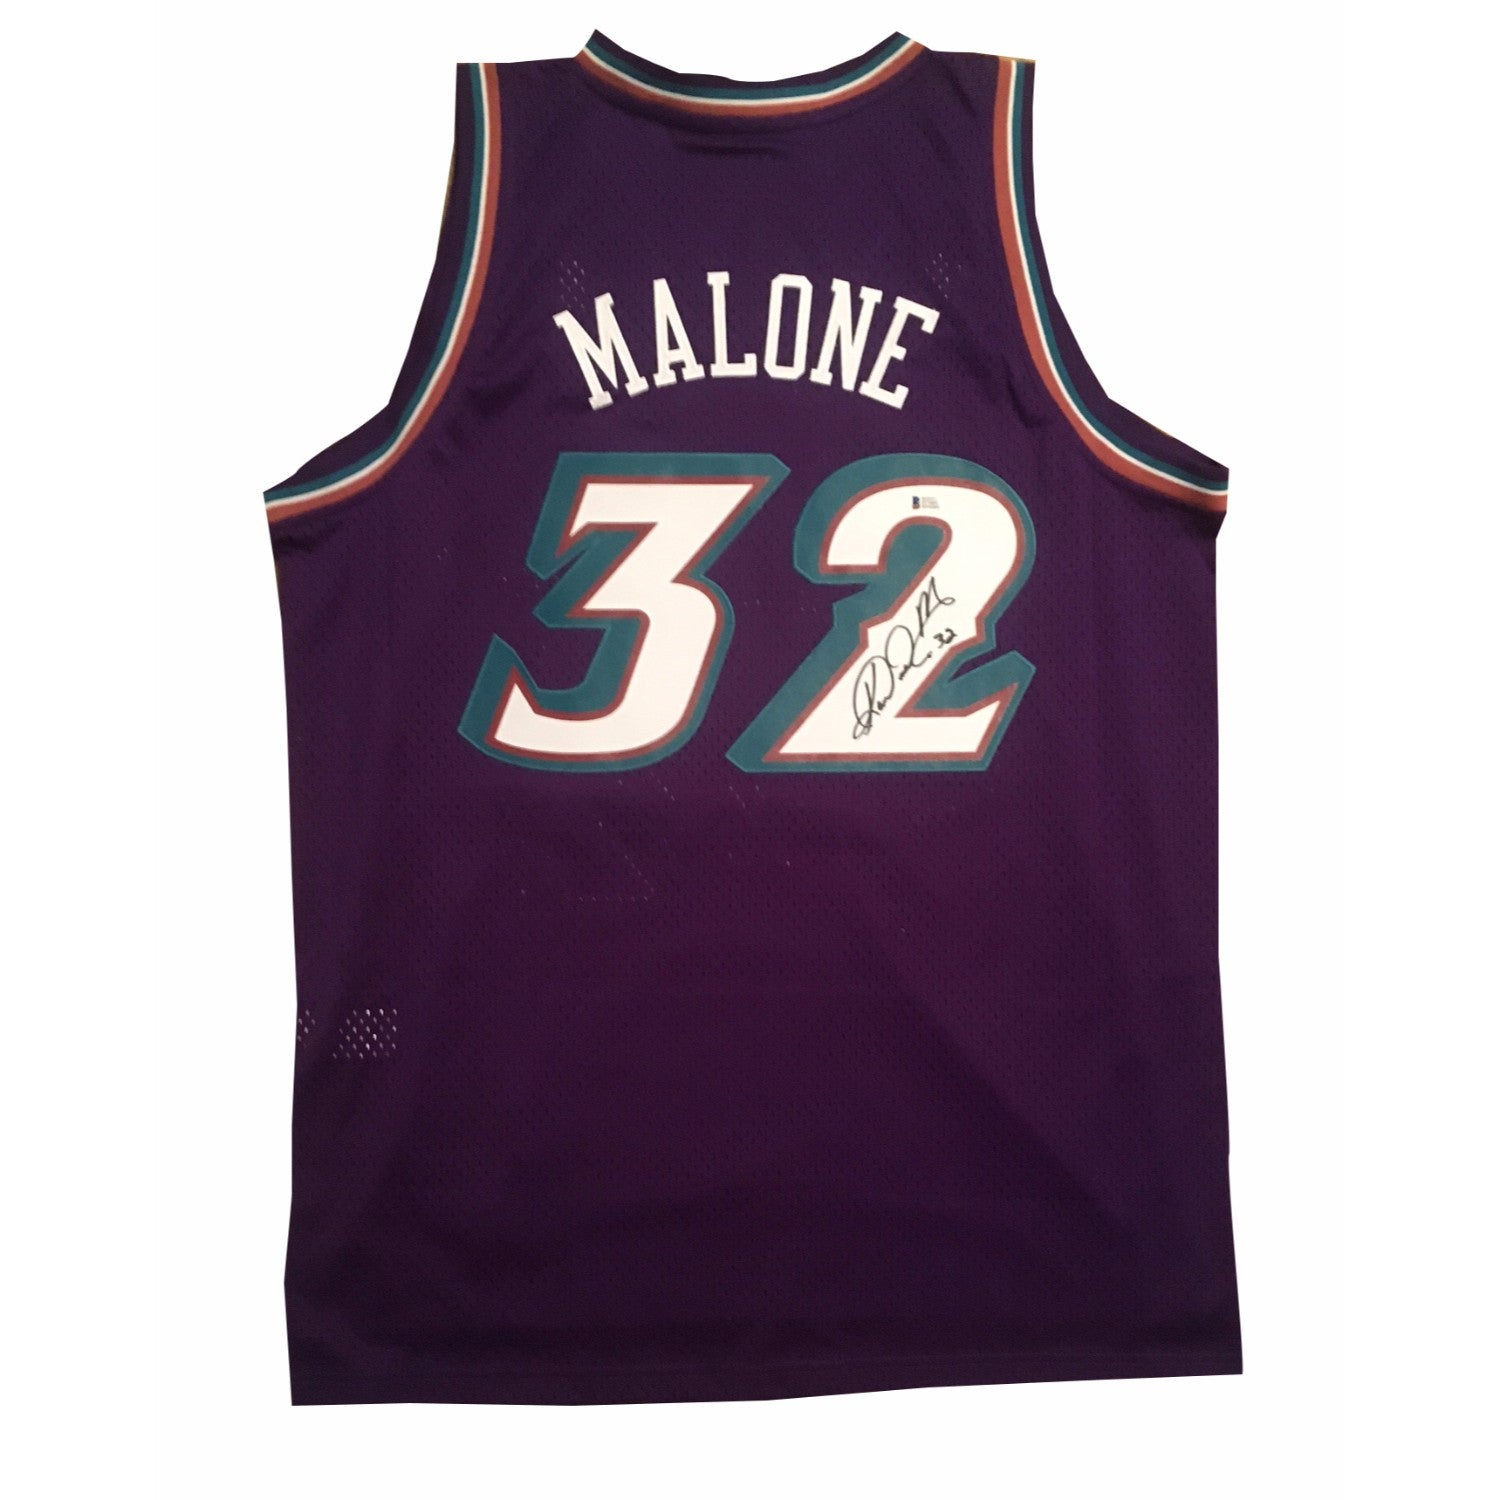 024ba768232e ... denmark karl malone autographed utah jazz signed swingman basketball  jersey beckett bas coa large powers sports